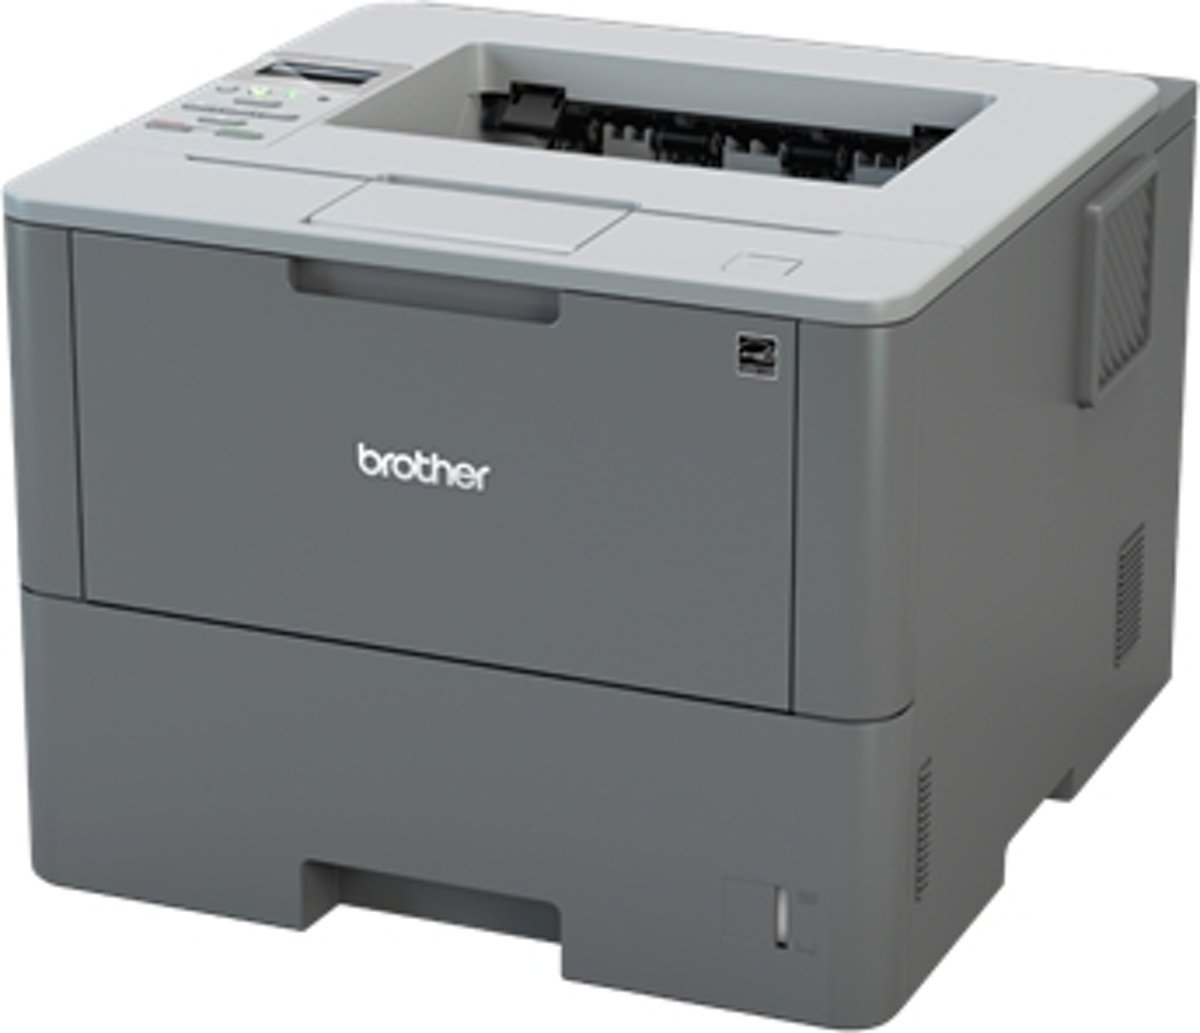 HL-L6250DN Netwerk Laserprinter 46 ppm - 256 MB - interne duplexunit - LCD display